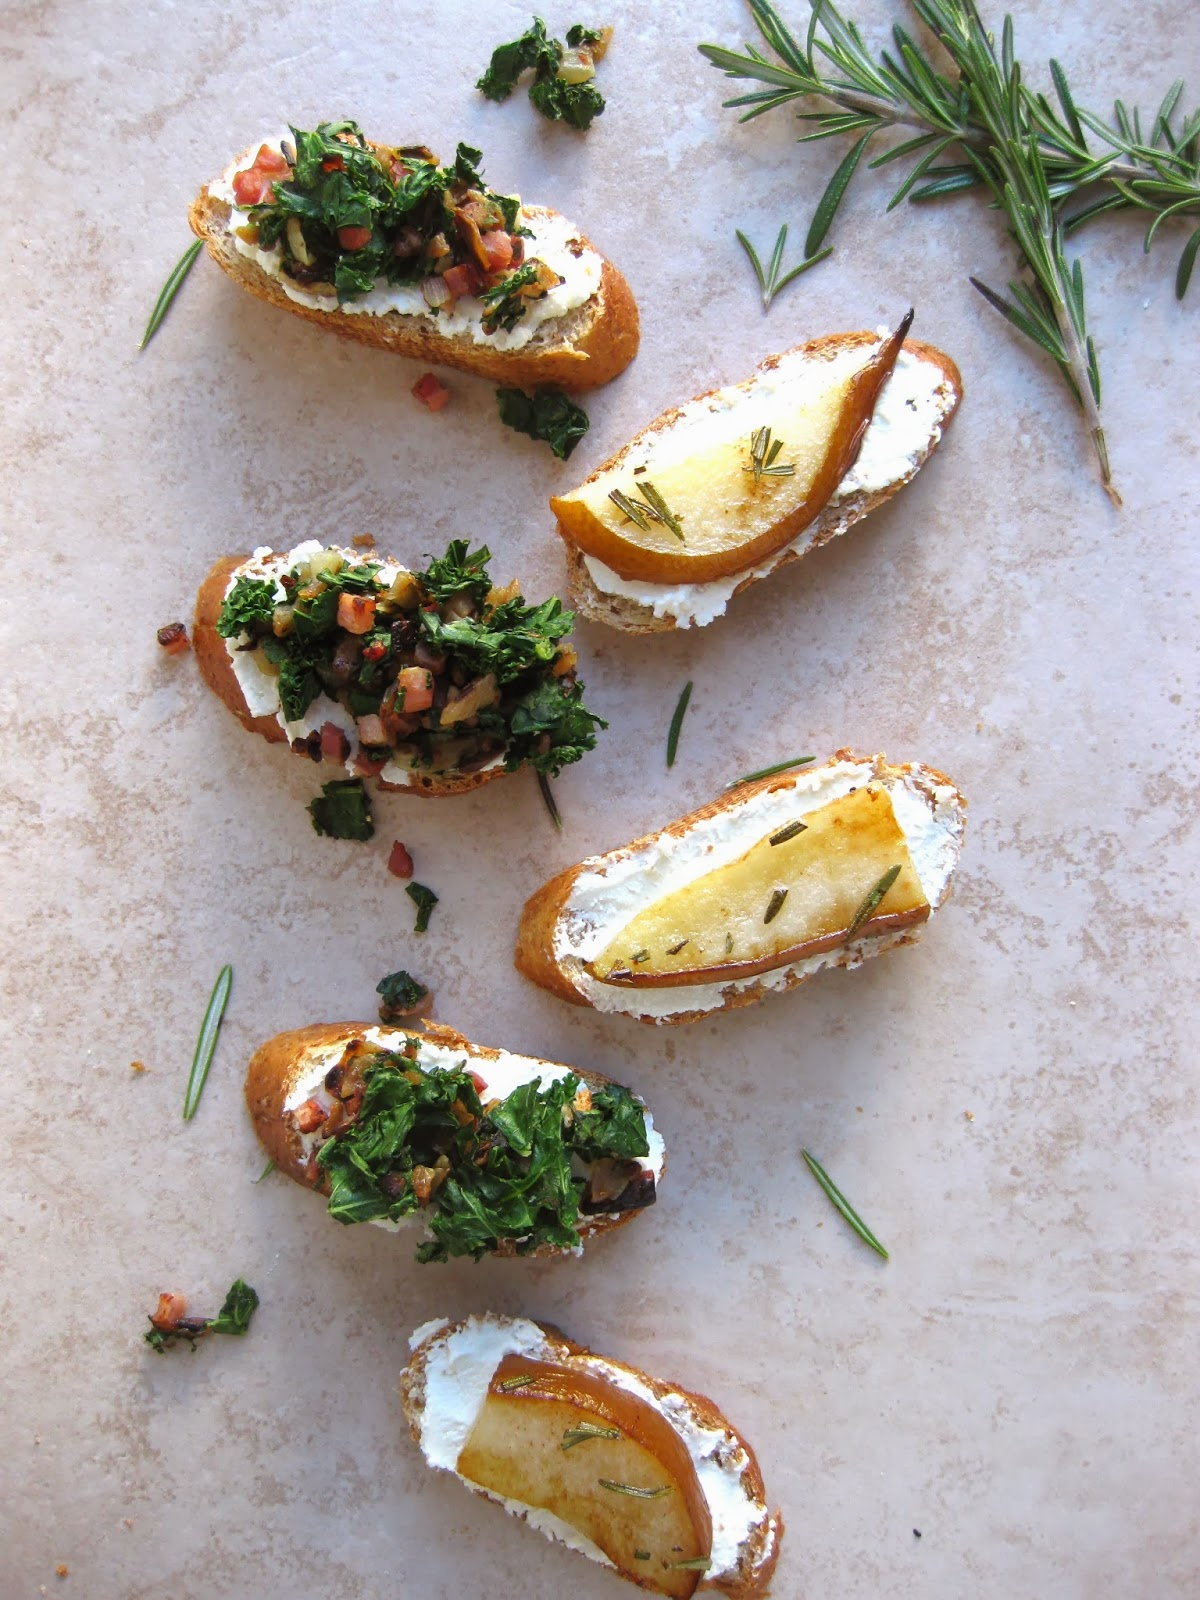 ... Goat Cheese Crostini with Pancetta & Kale and Rosemary Roasted Pears